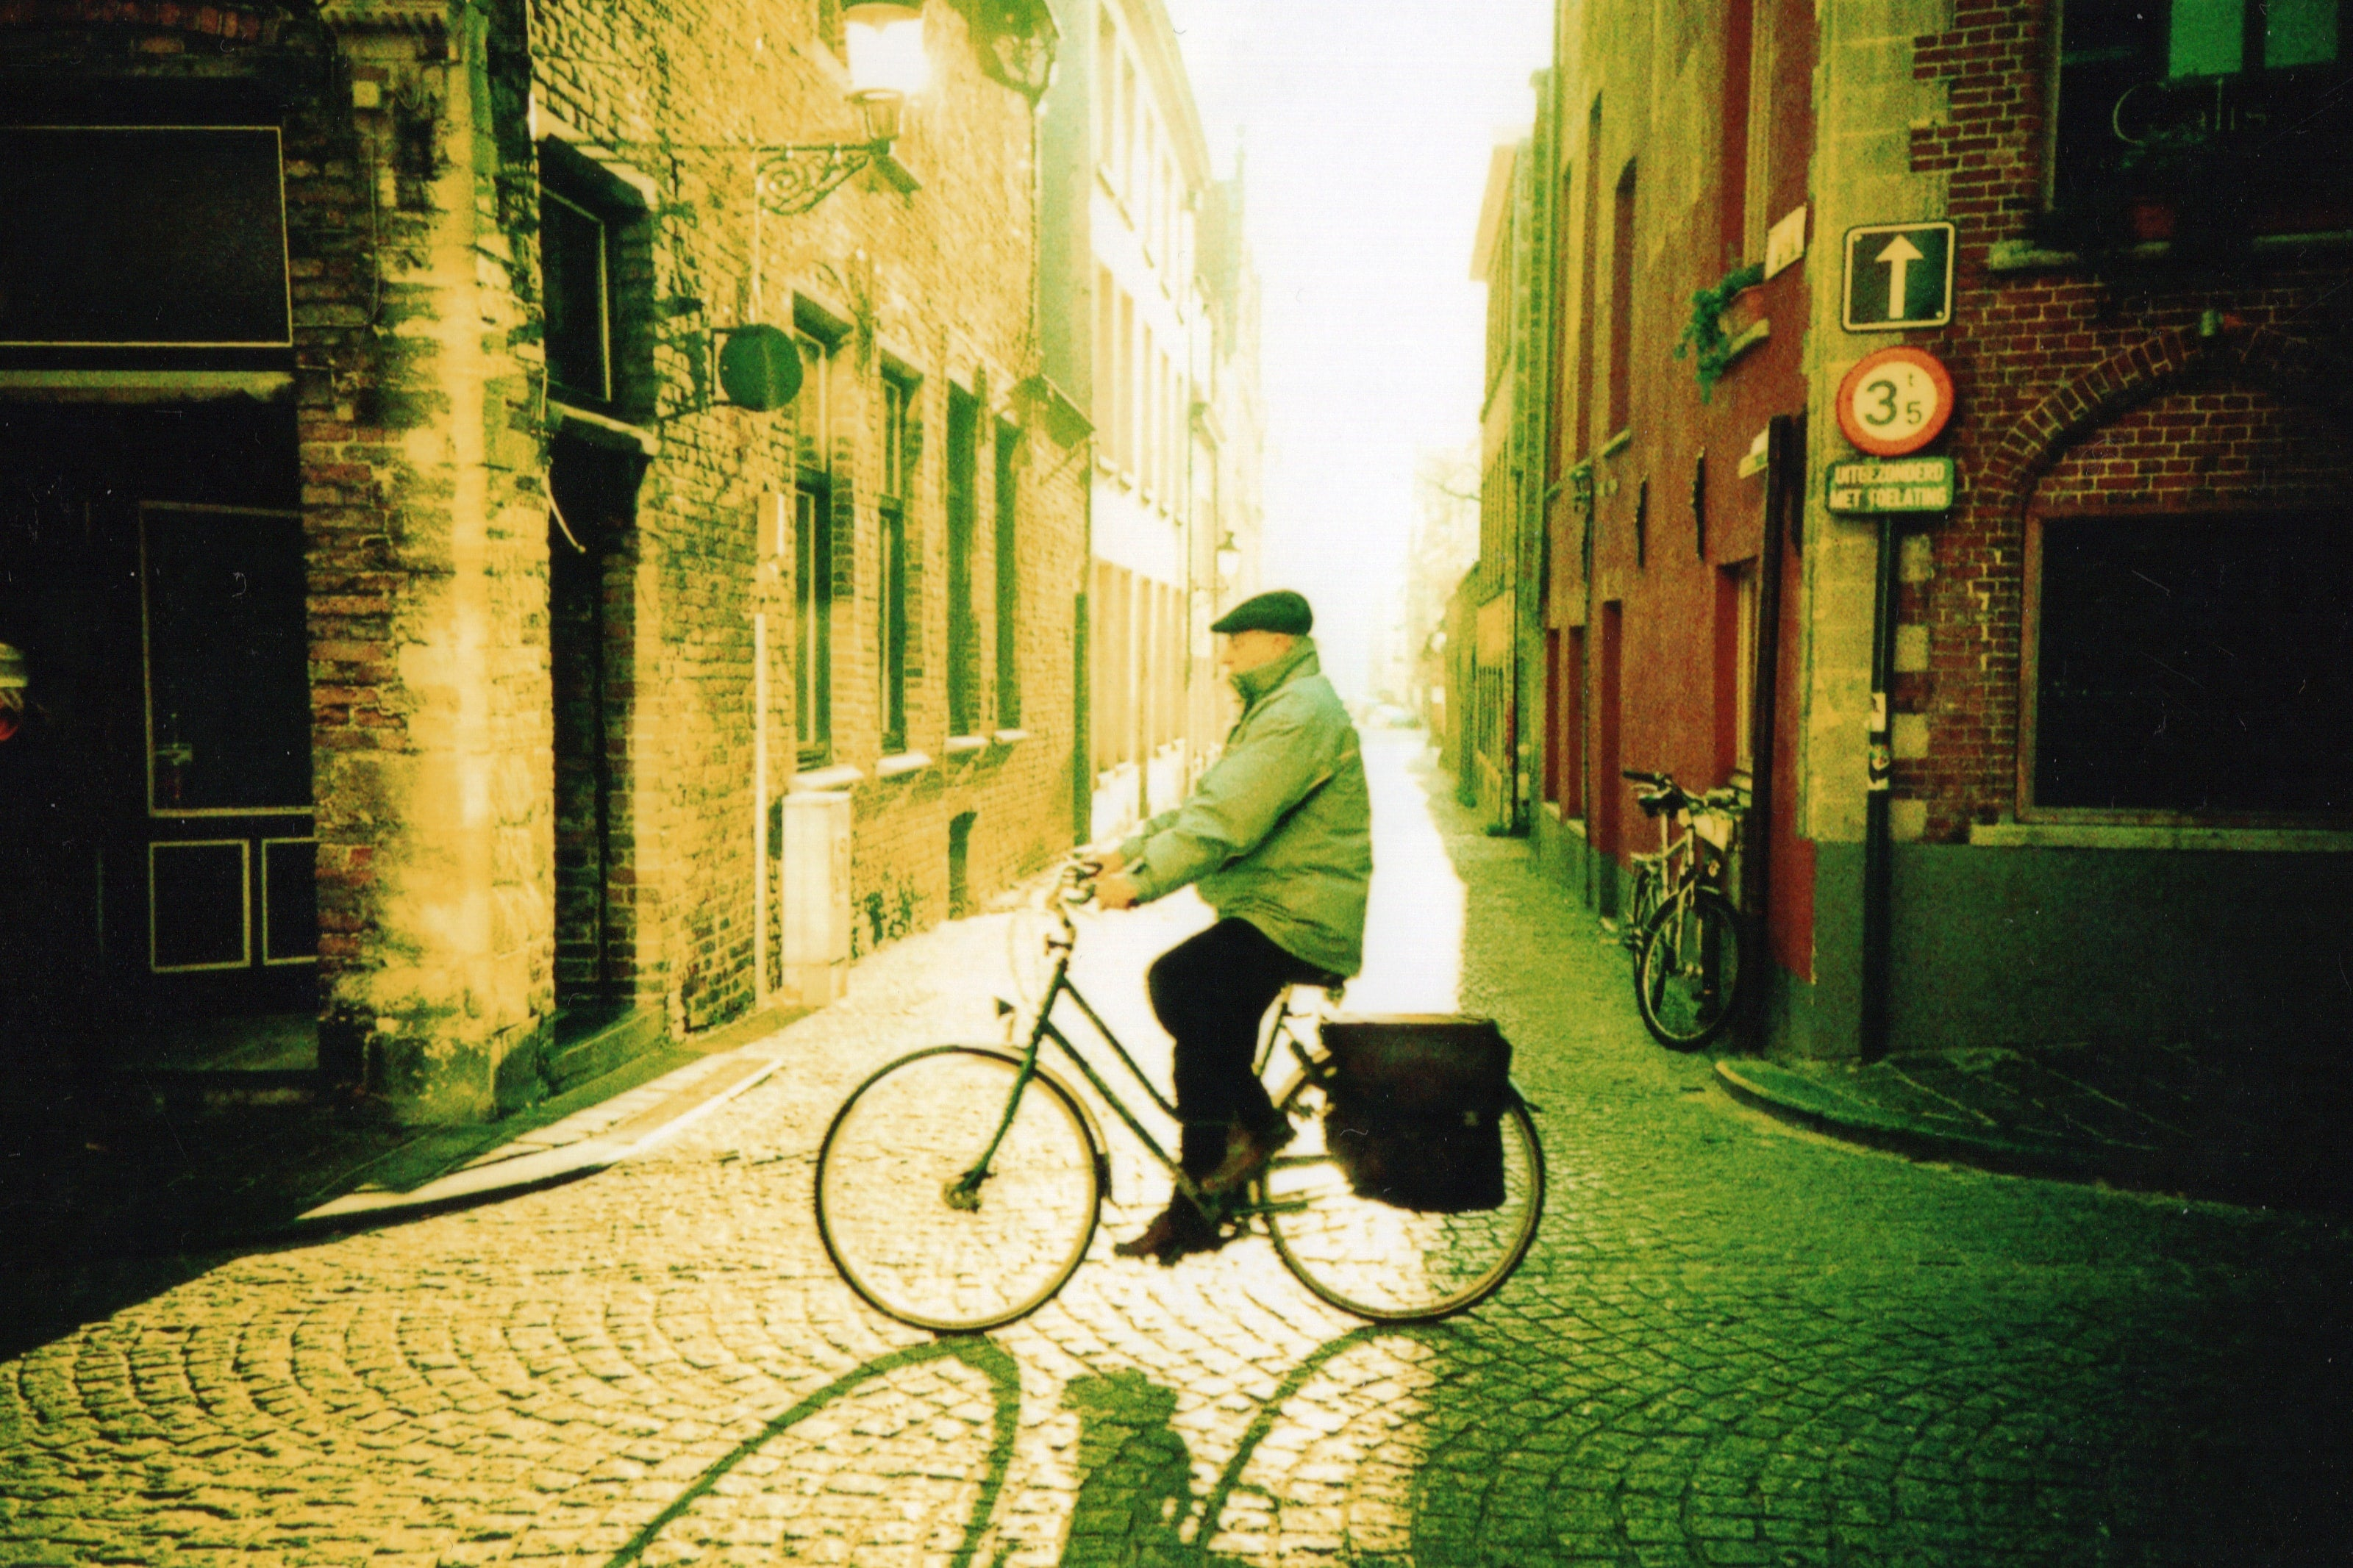 elderly man on a bicycle